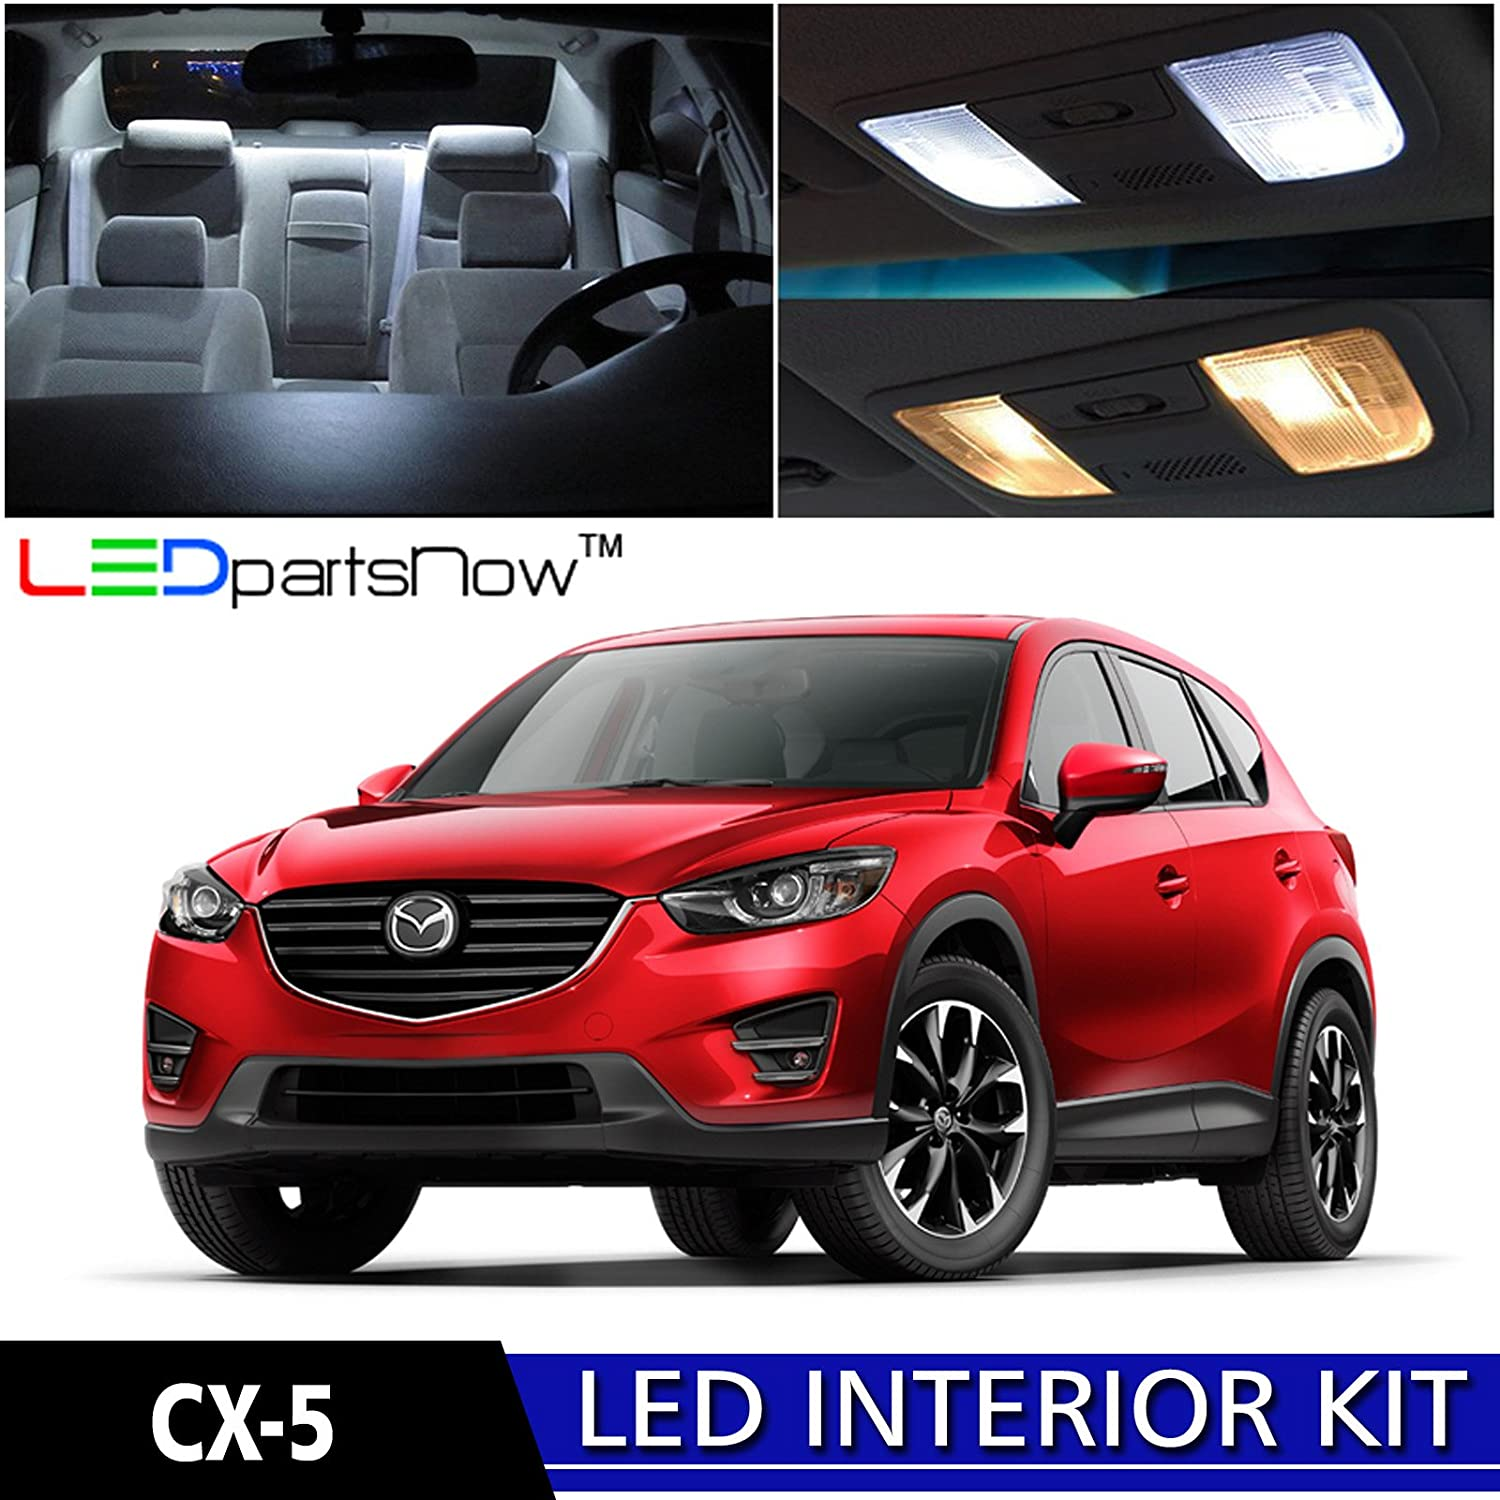 2017 mazda cx 5 interior lighting kit. Black Bedroom Furniture Sets. Home Design Ideas